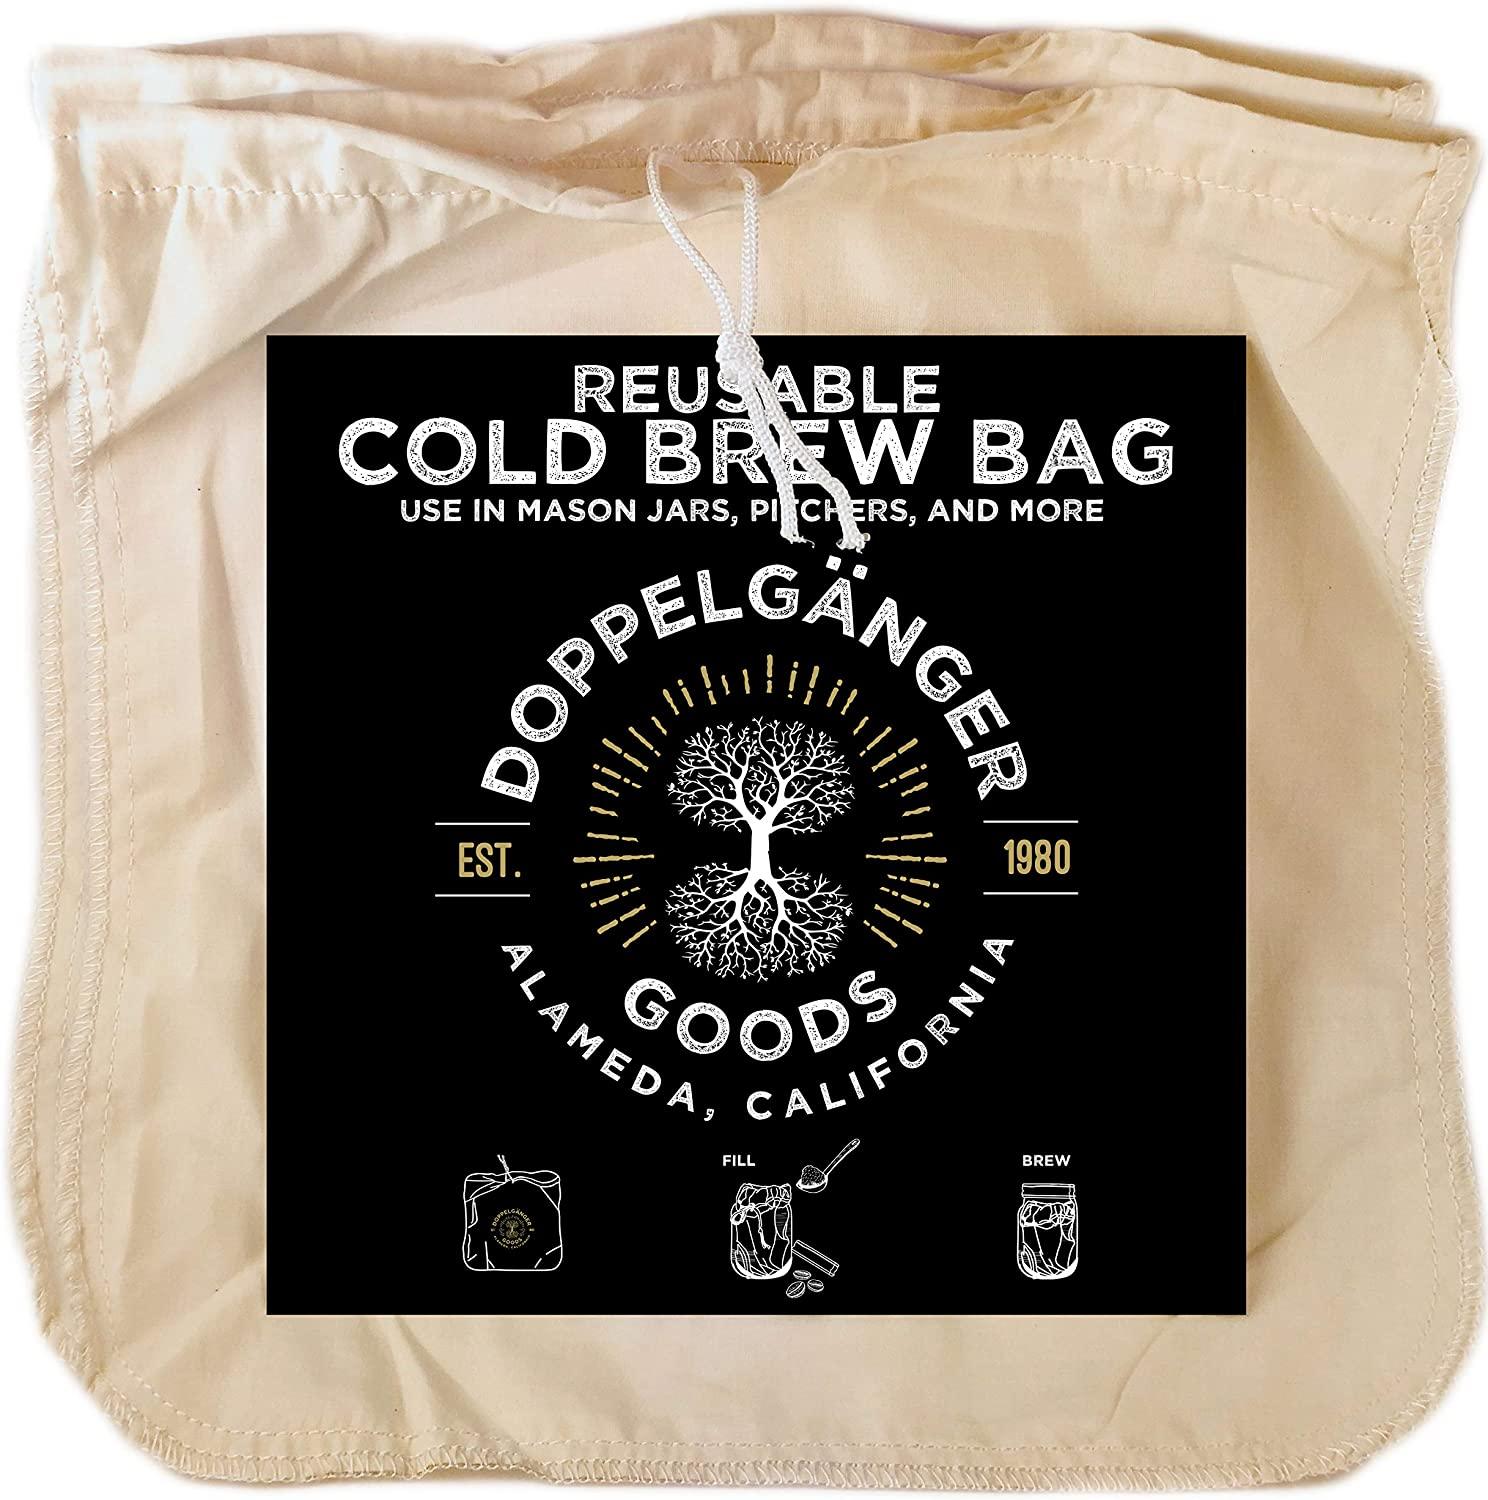 "(2-Pack, Large 12"" x 12"") Organic Cotton Cold Brew Coffee Bag - Designed in California - Reusable Coffee Filter with EasyOpen Drawstring Cold Brew Maker for Pitchers, Mason Jars, Toddy Systems"